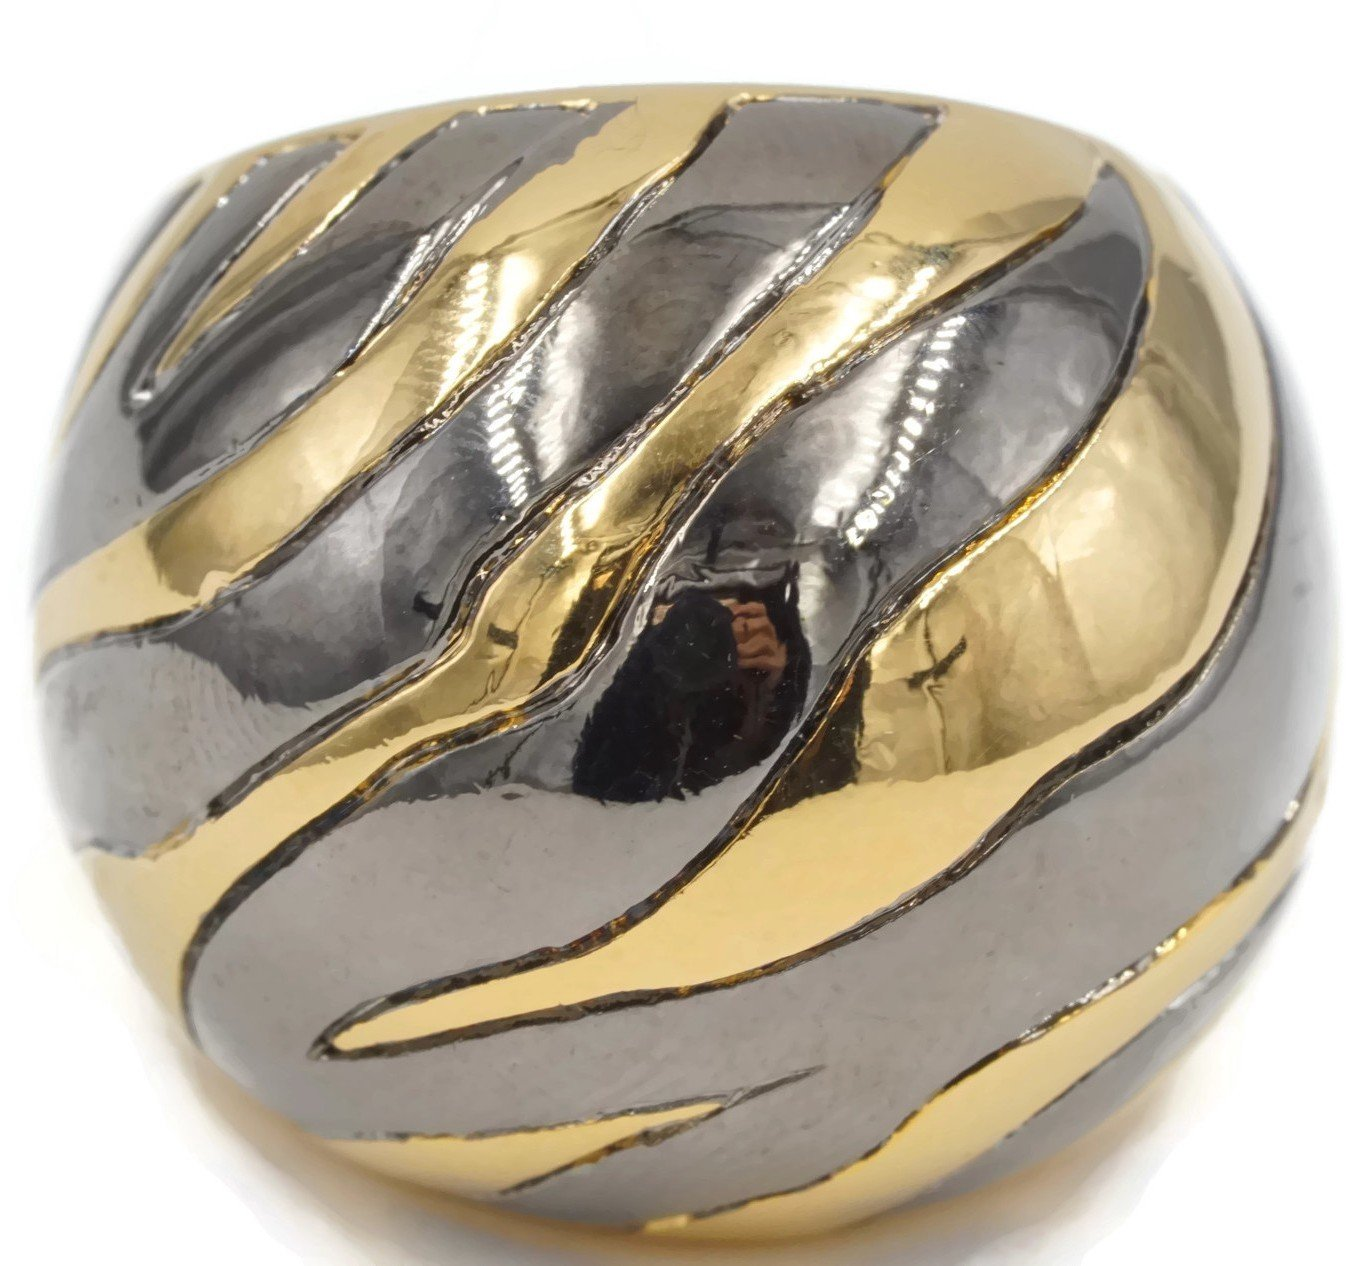 Ring is Big Solid Dome Zebra Stripe in Gold Tone